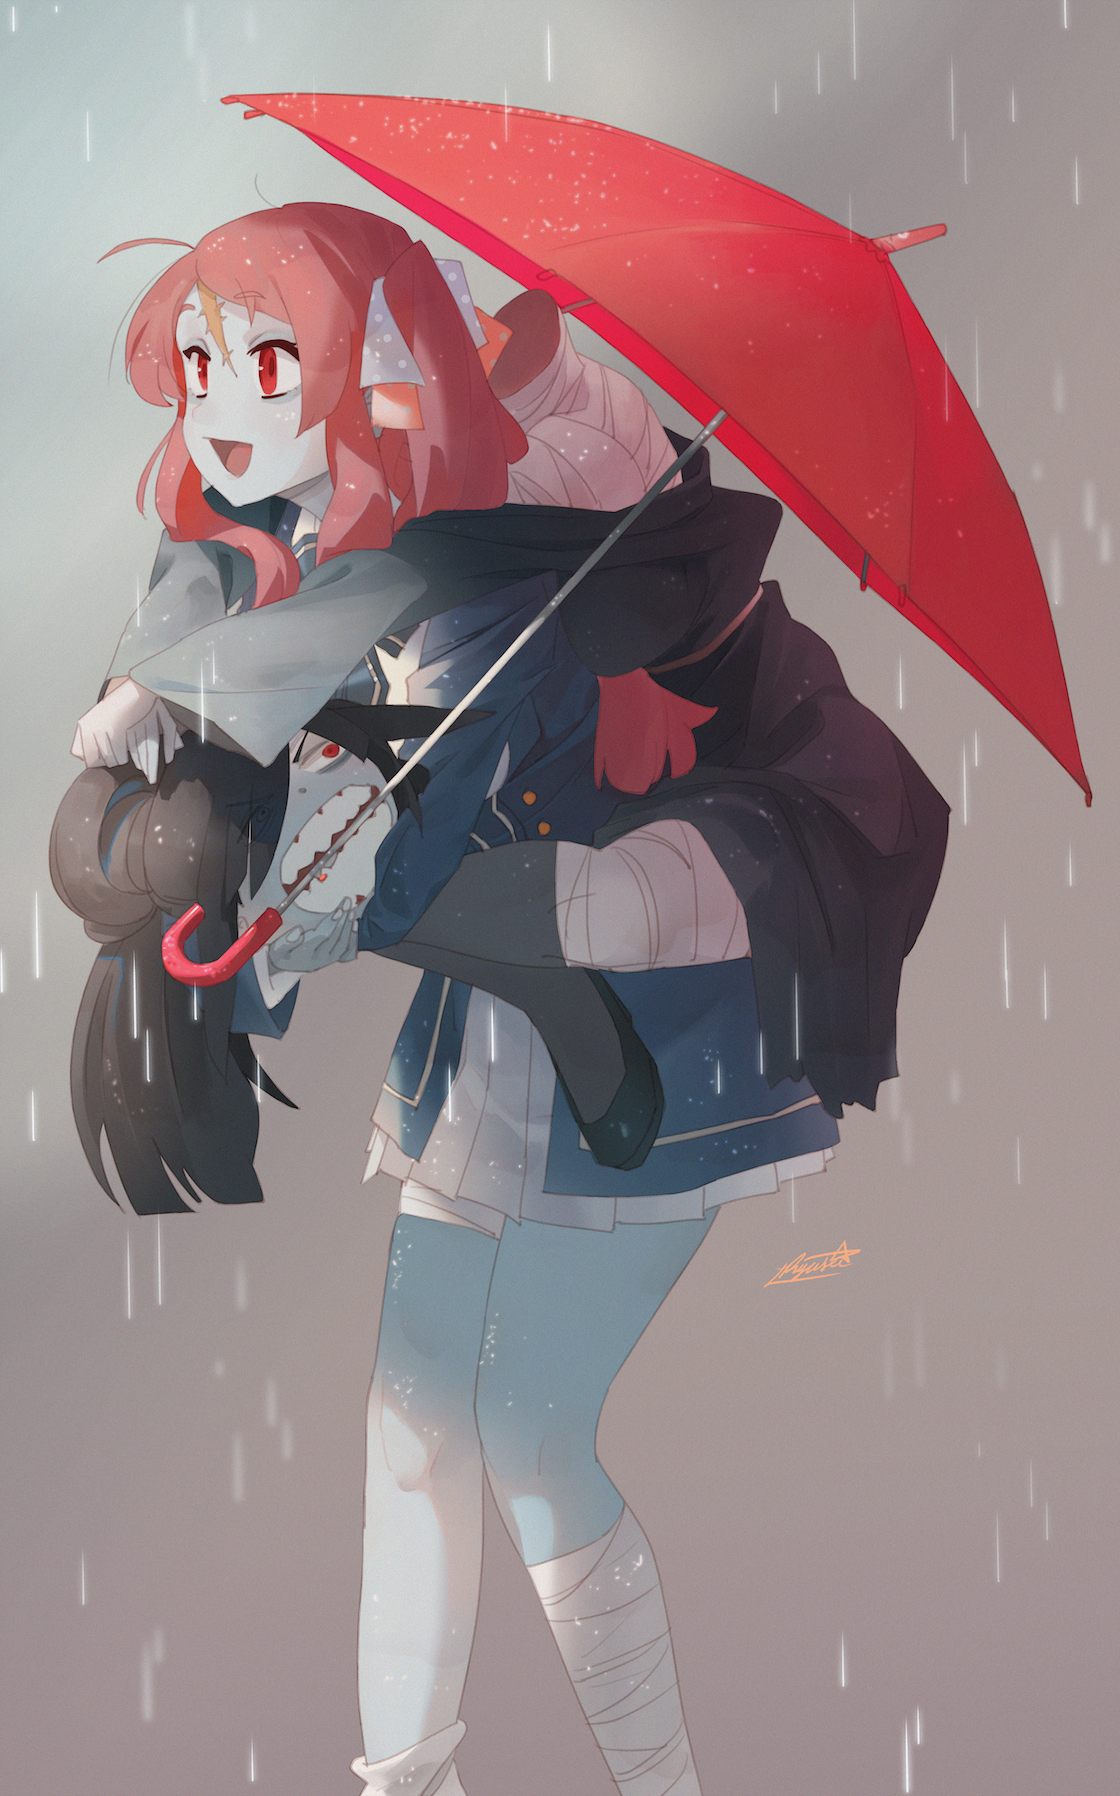 Zombieland Saga Monster Girl Scars Bandage JK Zombies Open Mouth Red Umbrella Anime Girls Red Eyes H 1120x1796